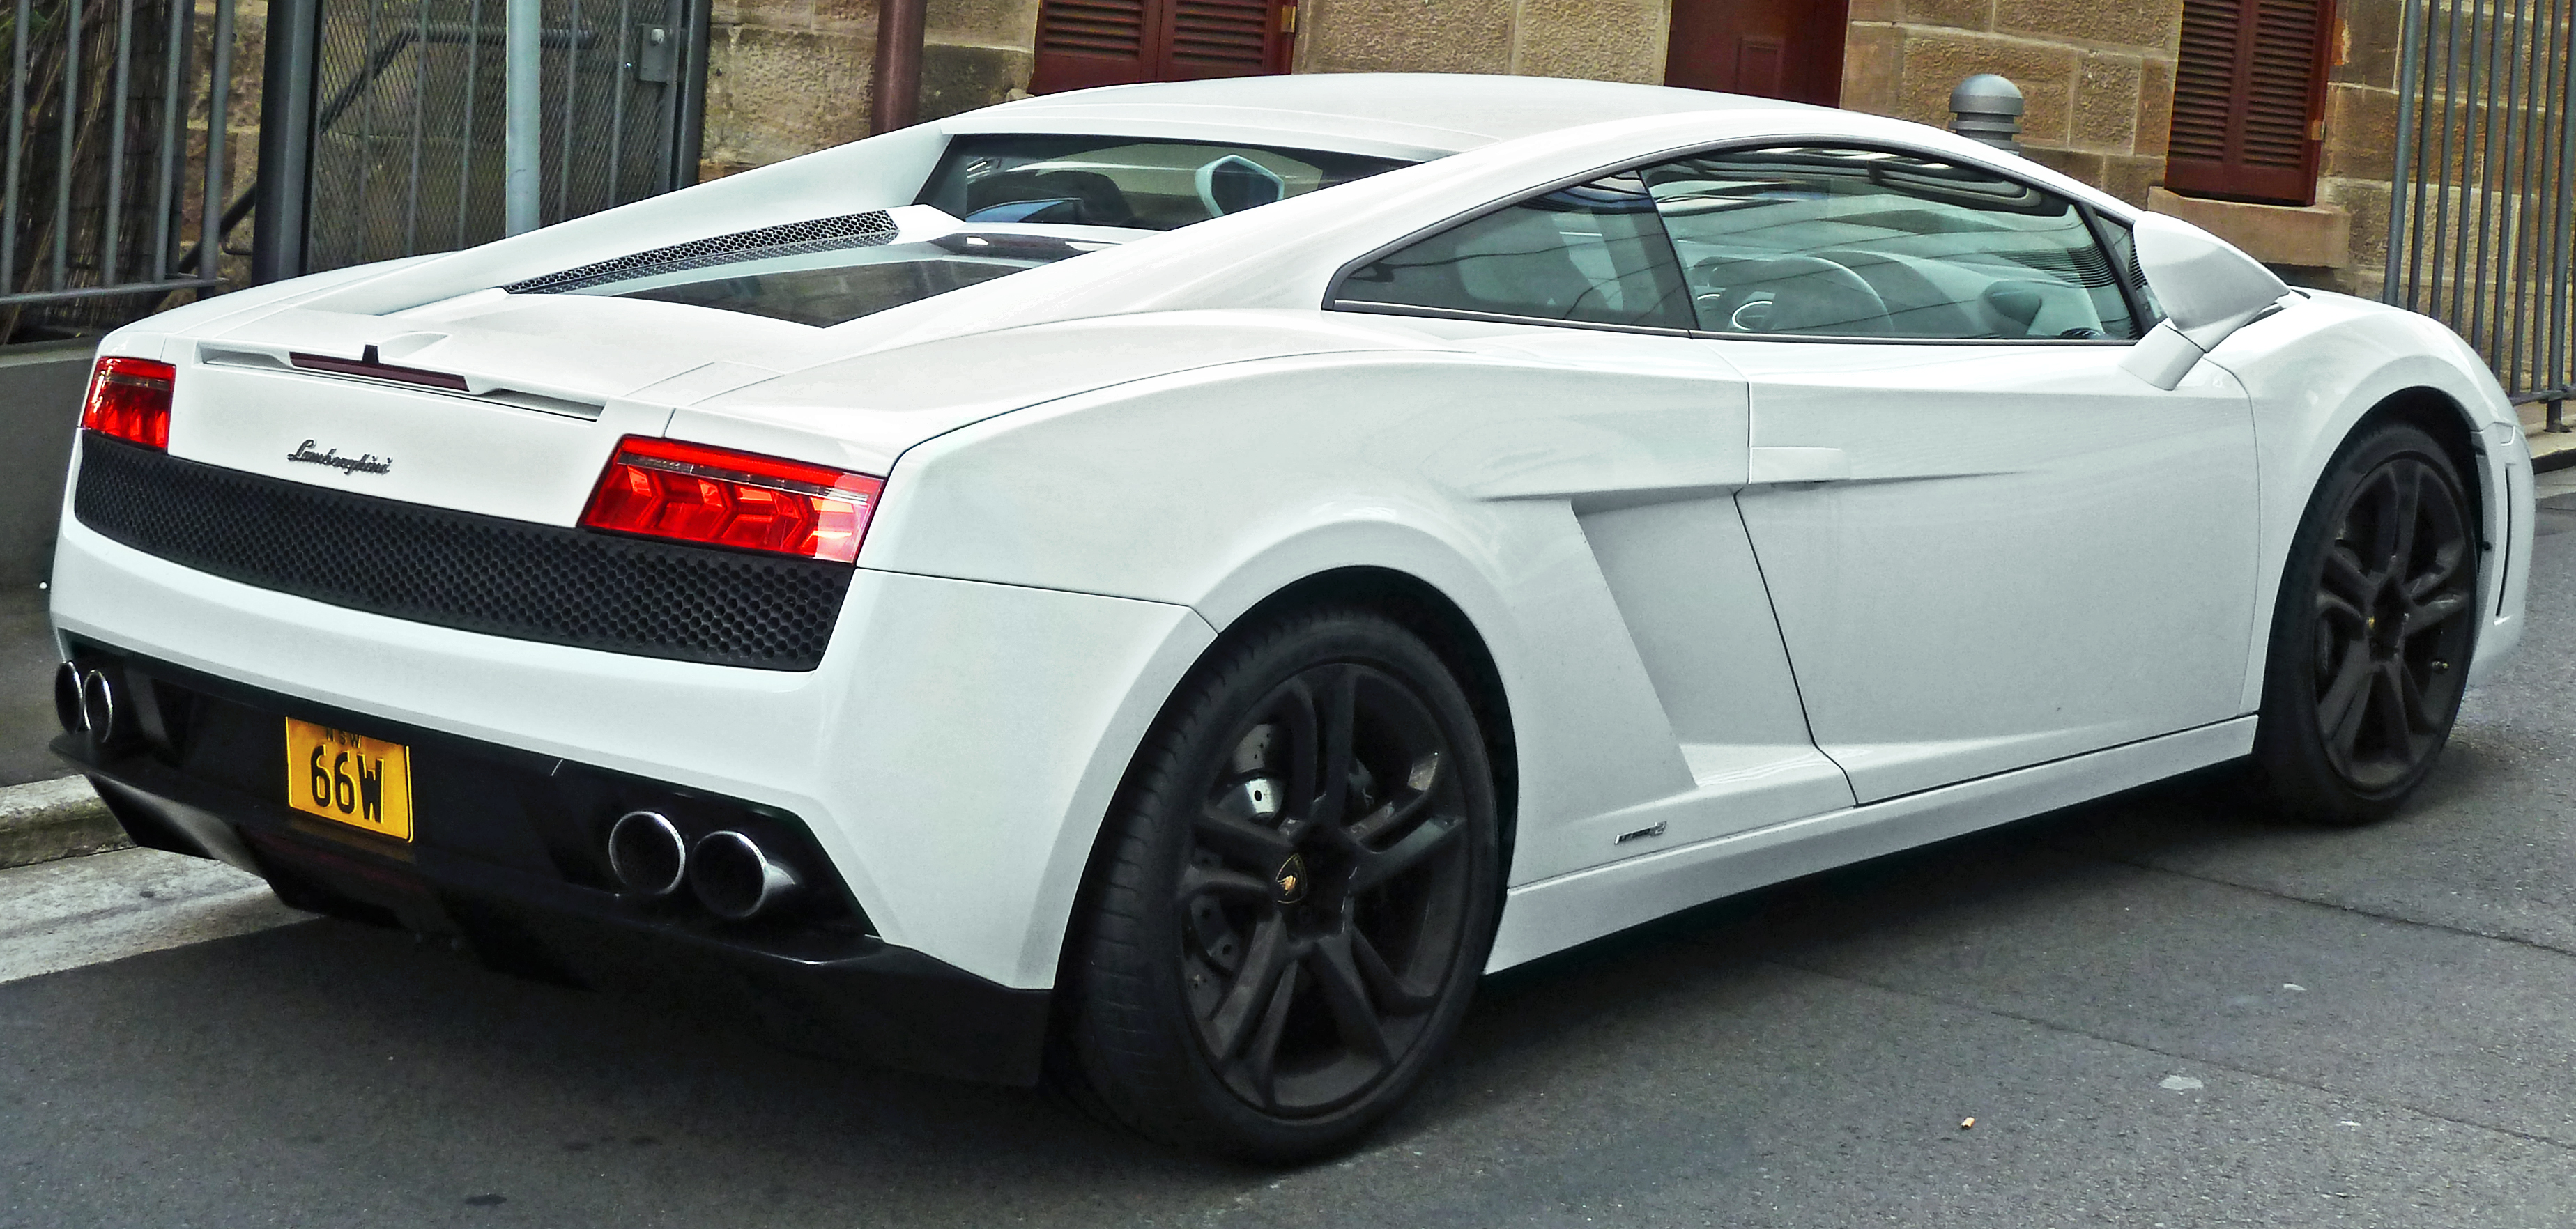 file:2010-2011 lamborghini gallardo (l140) lp 550-2 coupe (2011-11